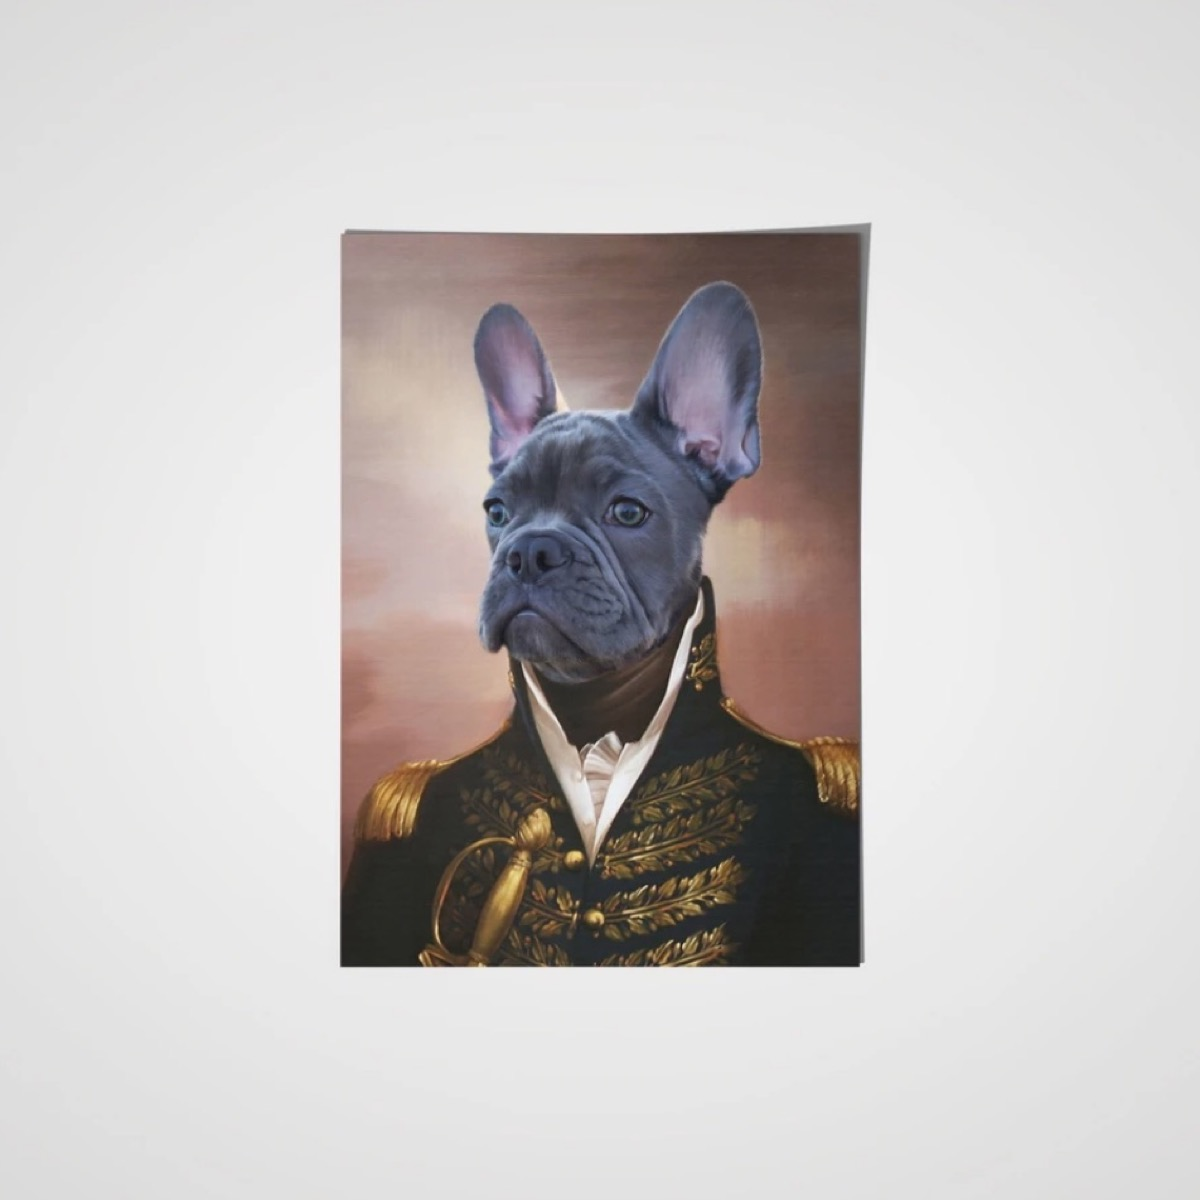 gray french bulldog dressed as a general in a painting